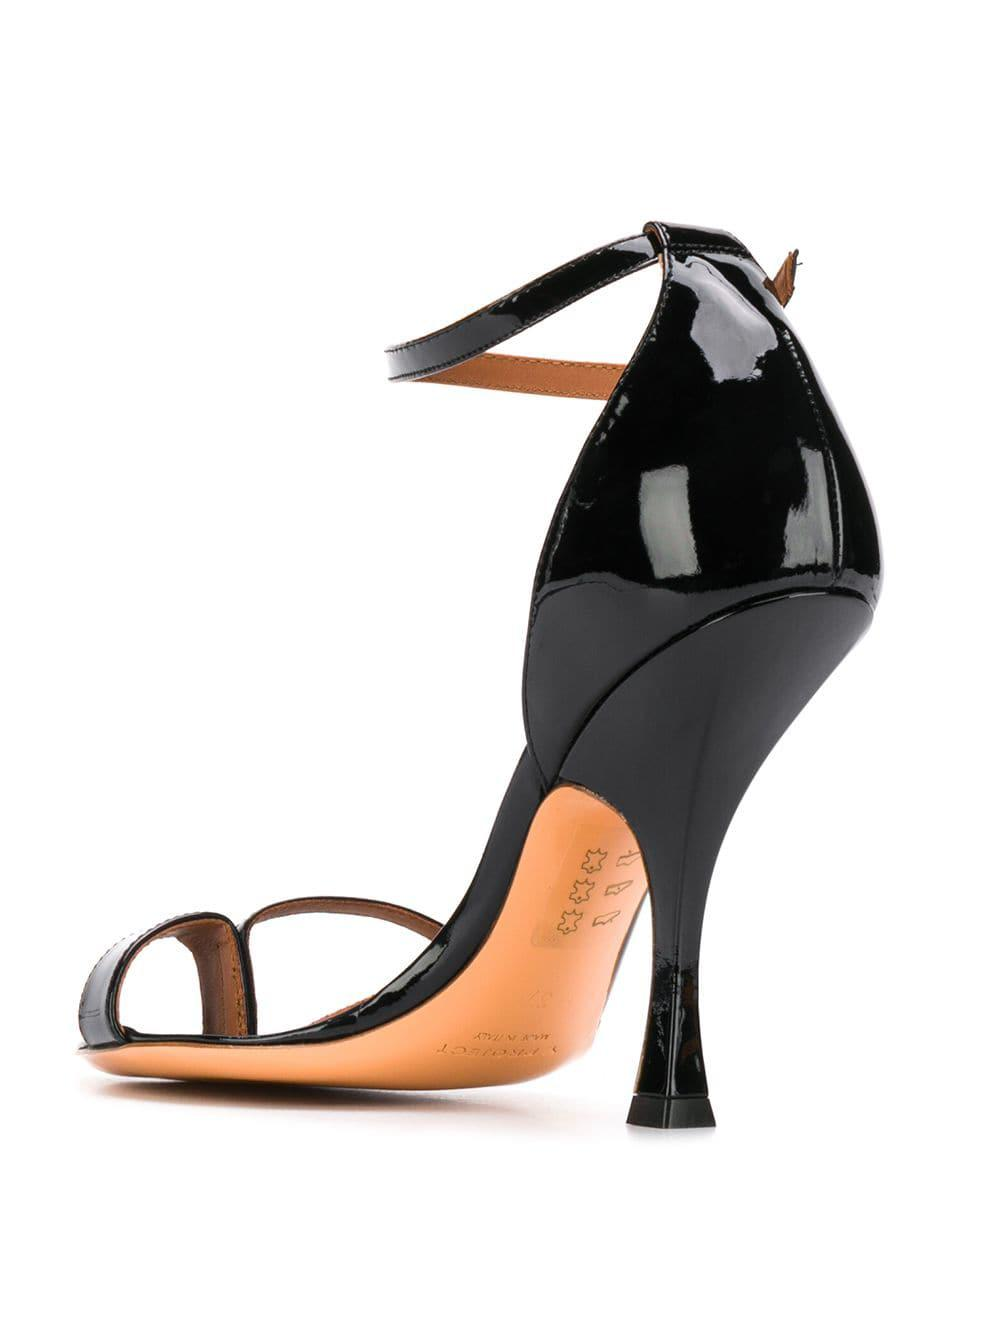 48f9f31012d4 Lyst - Y. Project Crystal Embellished Ankle Strap Sandals in Black